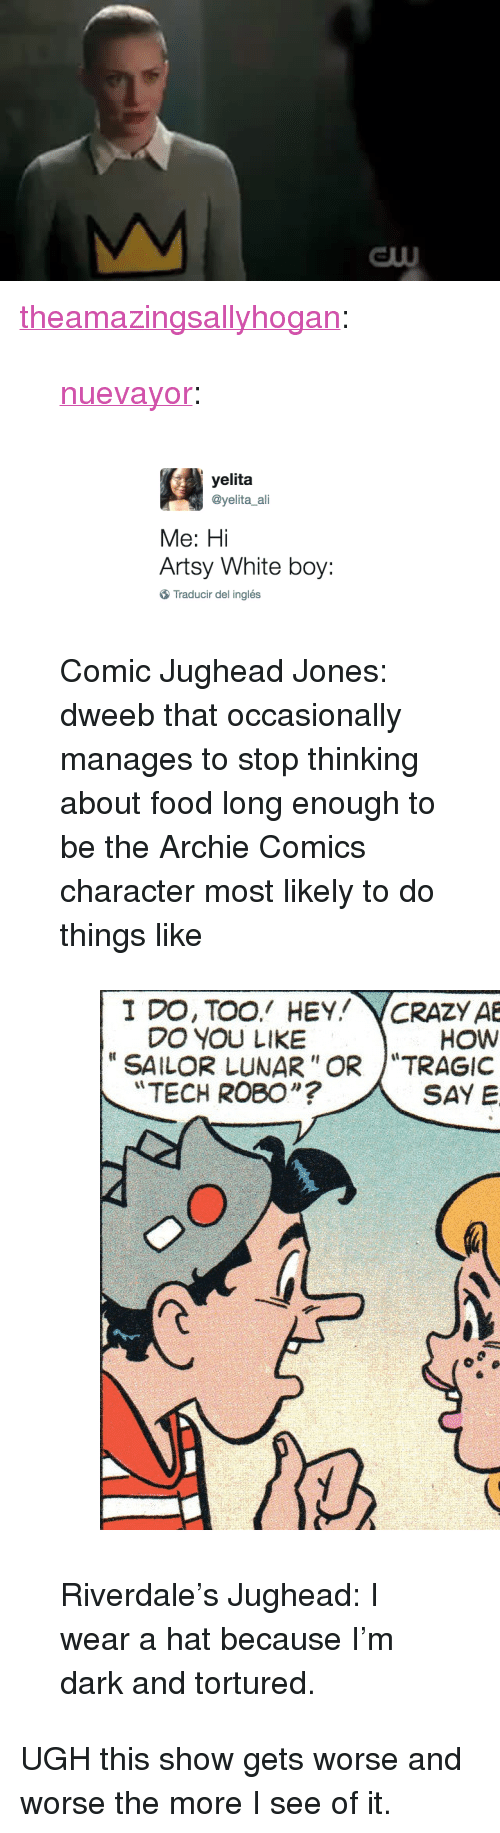 """archie comics: <p><a href=""""http://theamazingsallyhogan.tumblr.com/post/159688529486/nuevayor-comic-jughead-jones-dweeb-that"""" class=""""tumblr_blog"""">theamazingsallyhogan</a>:</p><blockquote> <p><a href=""""http://nuevayor.tumblr.com/post/159622425903"""" class=""""tumblr_blog"""">nuevayor</a>:</p> <blockquote><p><figure class=""""tmblr-full"""" data-orig-height=""""158"""" data-orig-width=""""540"""" data-orig-src=""""https://78.media.tumblr.com/fad3437ff04e6a8a0d45343daaf5a7fb/tumblr_inline_oohjt5pl741qma11m_540.png""""><img src=""""https://78.media.tumblr.com/fad3437ff04e6a8a0d45343daaf5a7fb/tumblr_inline_ookrymegib1rw09tq_540.png"""" data-orig-height=""""158"""" data-orig-width=""""540"""" alt=""""image"""" data-orig-src=""""https://78.media.tumblr.com/fad3437ff04e6a8a0d45343daaf5a7fb/tumblr_inline_oohjt5pl741qma11m_540.png""""/></figure></p></blockquote> <p>Comic Jughead Jones: dweeb that occasionally manages to stop thinking about food long enough to be the Archie Comics character most likely to do things like</p> <figure class=""""tmblr-full"""" data-orig-height=""""540"""" data-orig-width=""""540"""" data-orig-src=""""https://78.media.tumblr.com/b73ca2ef55e84f6378997fa1fdb3b2c3/tumblr_inline_ooklamcZaj1rs3eqa_540.jpg""""><img src=""""https://78.media.tumblr.com/2003503dd5f09f6bd5a8ade438a7082a/tumblr_inline_ookrynms941rw09tq_540.jpg"""" data-orig-height=""""540"""" data-orig-width=""""540"""" data-orig-src=""""https://78.media.tumblr.com/b73ca2ef55e84f6378997fa1fdb3b2c3/tumblr_inline_ooklamcZaj1rs3eqa_540.jpg""""/></figure><p>Riverdale's Jughead: I wear a hat because I'm dark and tortured.</p> </blockquote> <p>UGH this show gets worse and worse the more I see of it.</p>"""